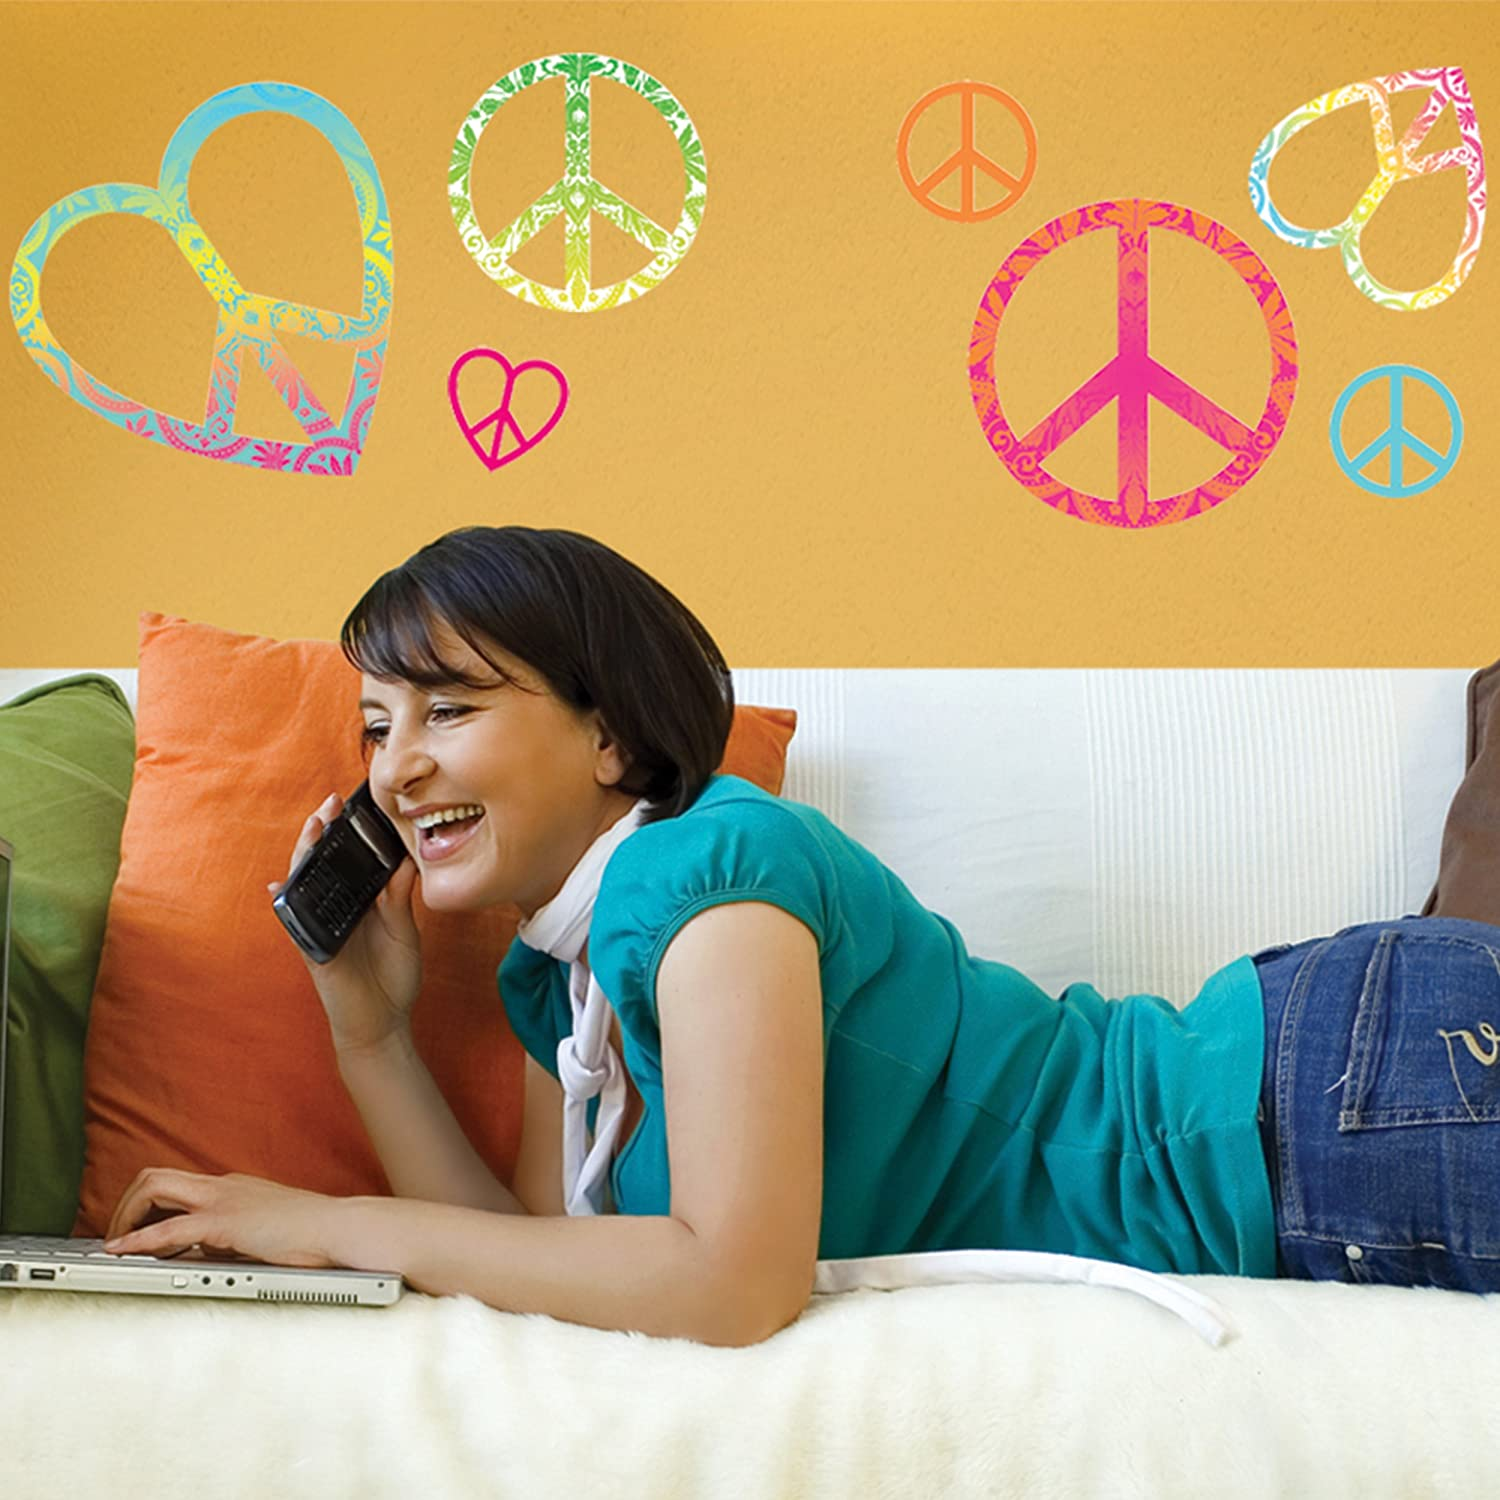 Amazon.com: DCWV Wall Art Peace Signs, Girl, Peel-Stick, Multi: Home ...